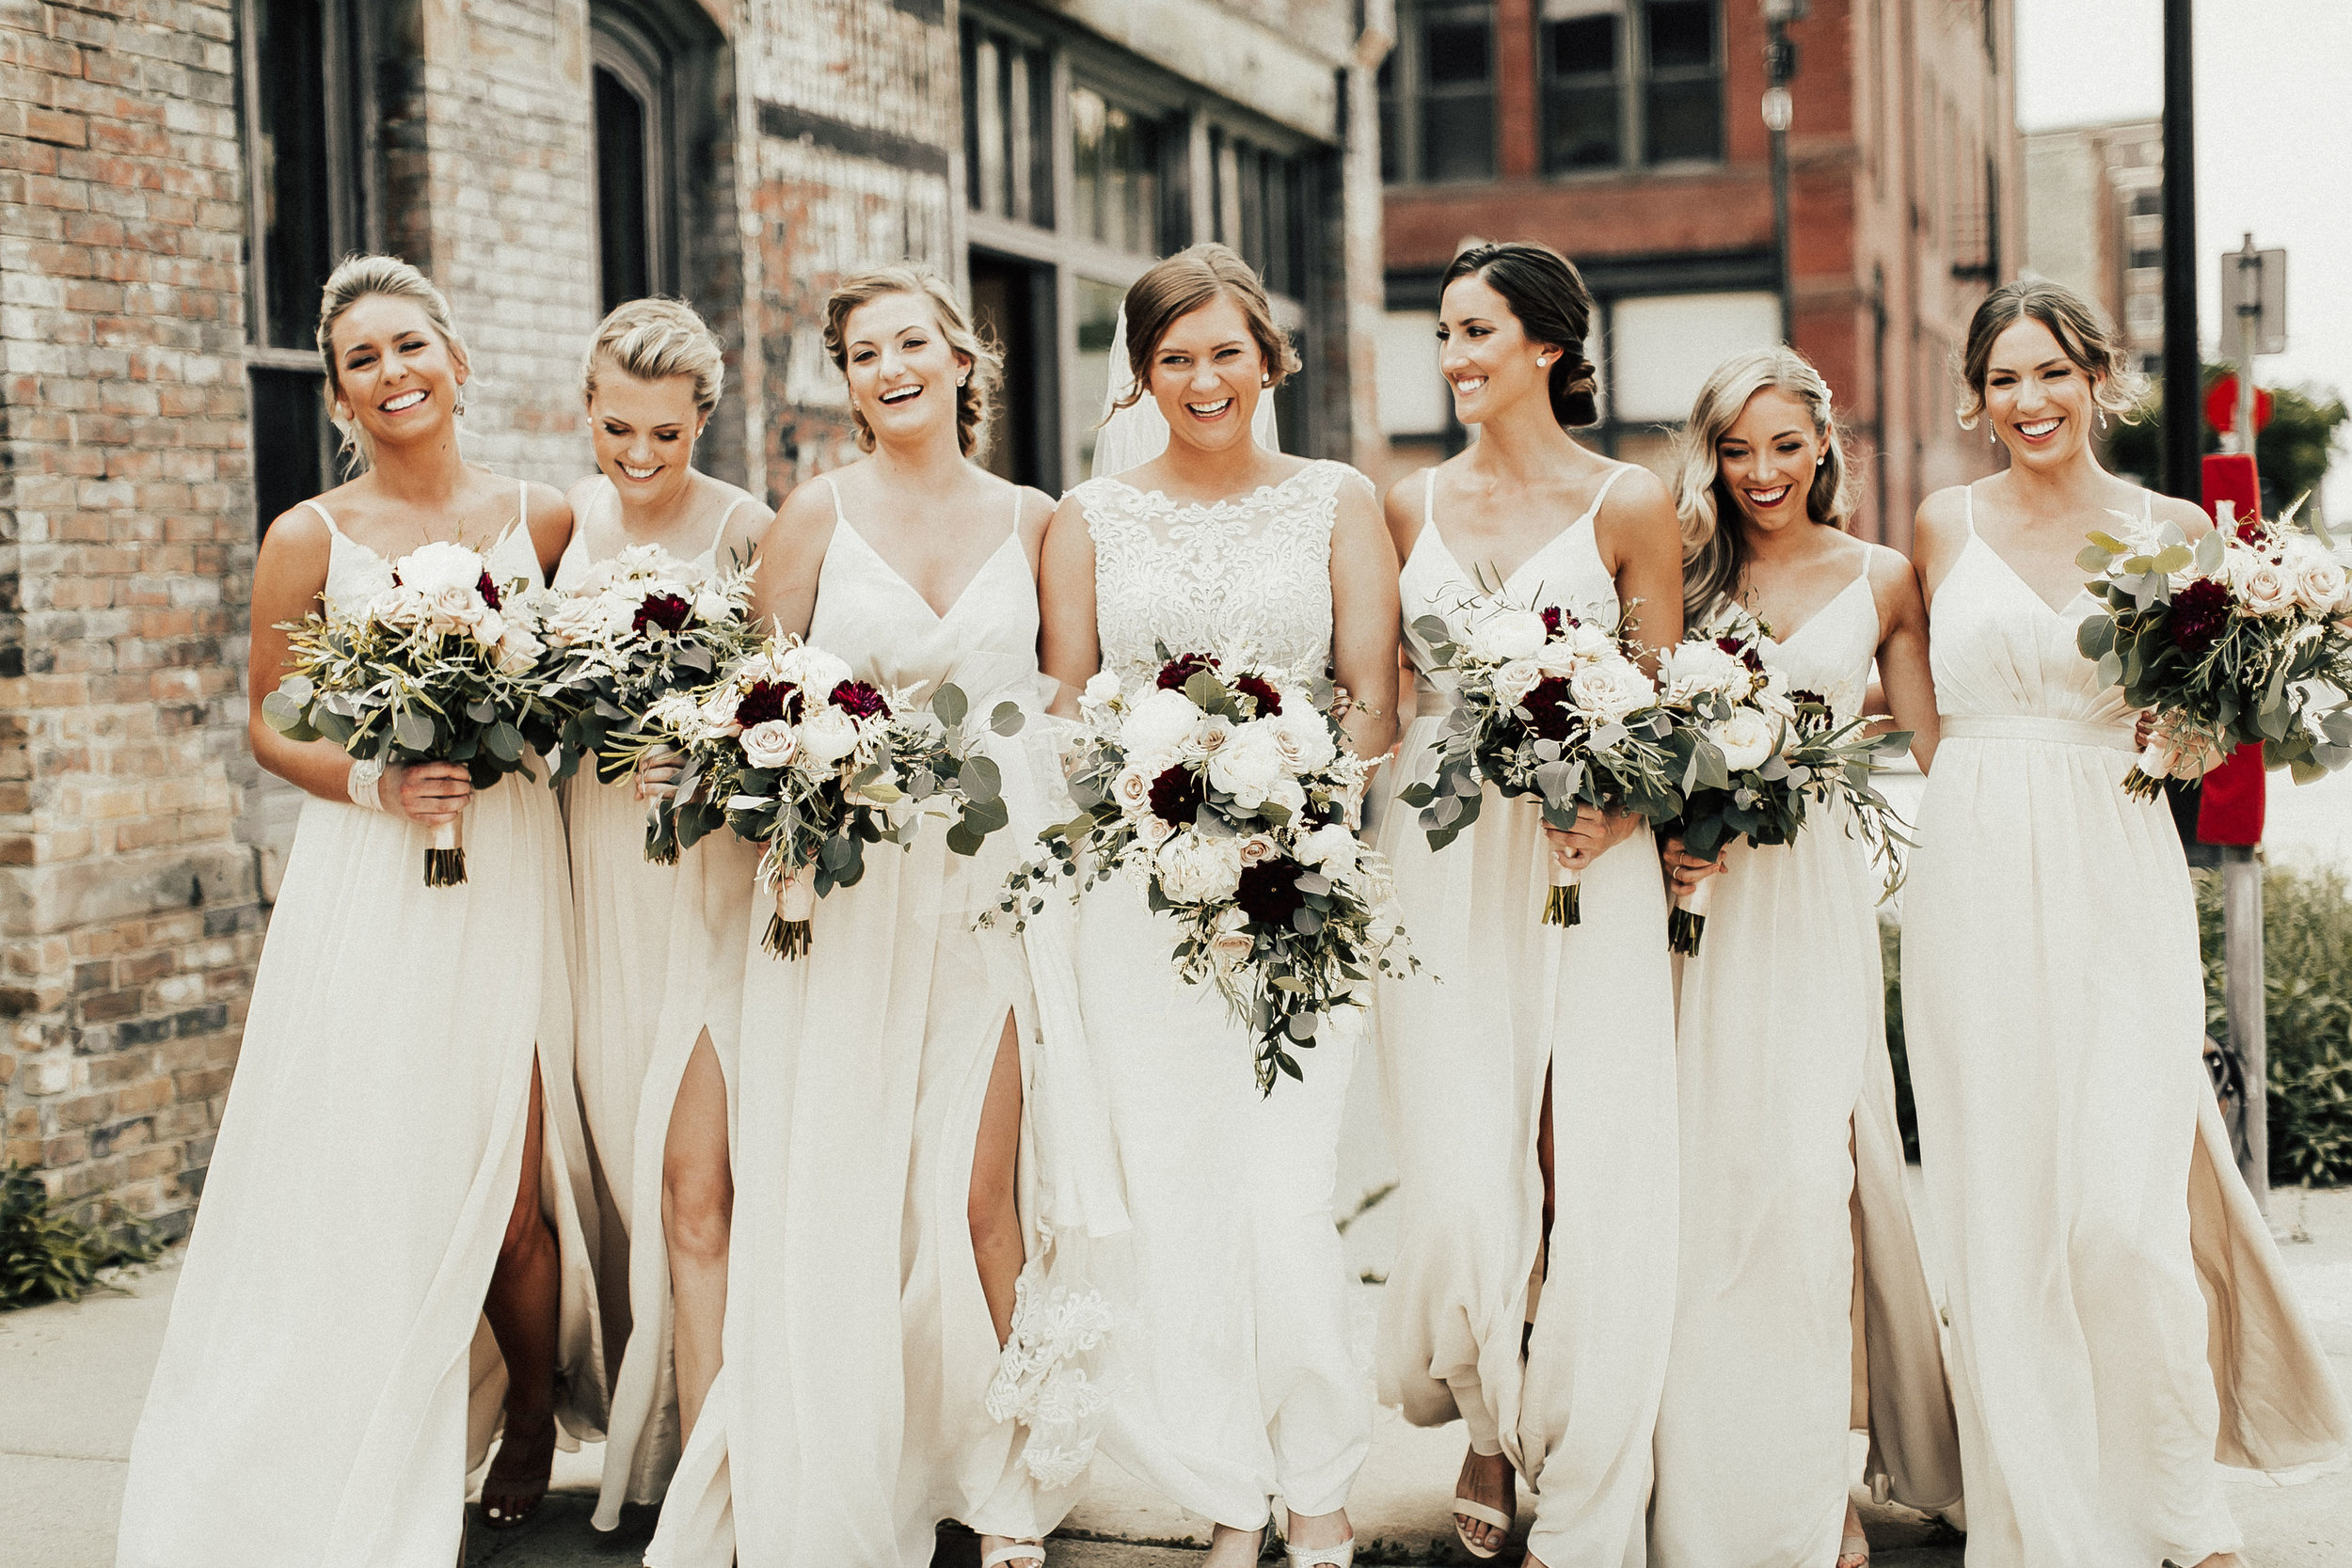 From Left to Right: Hayley Erstad (matron of honor), Brooke Harms (bridesmaid, sister of the groom), Sami Harms (bridesmaid, sister of the groom), Katie Harms (BRIDE), Kristie Miller (bridesmaid), Ali Wolff (maid of honor) Erika Dahlen (bridesmaid)